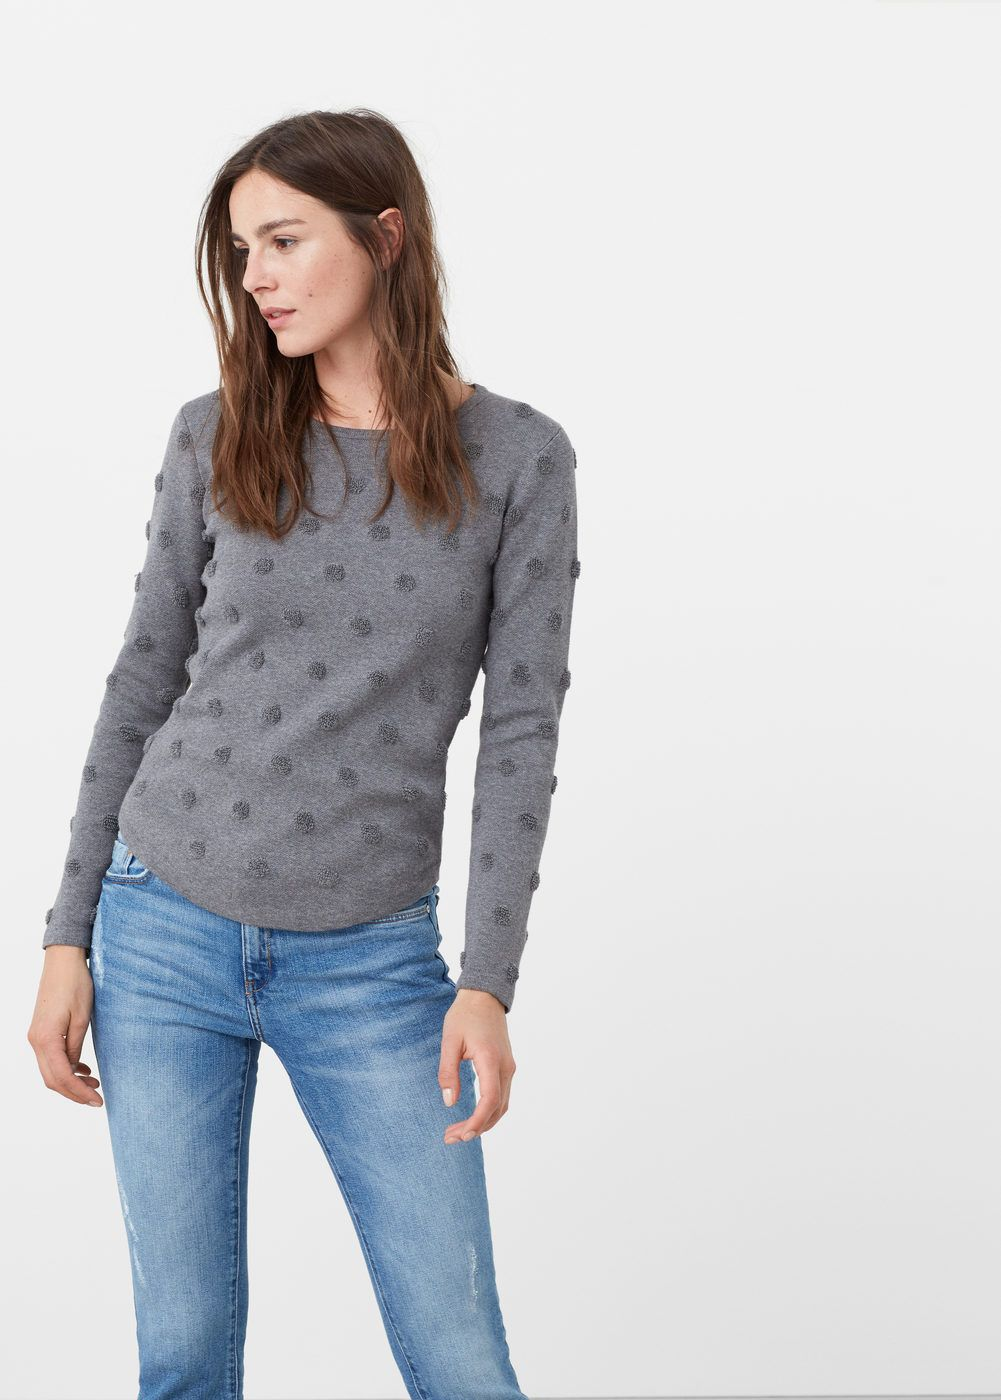 6beda2db9dc1 Pull-over à pois relief - Femme